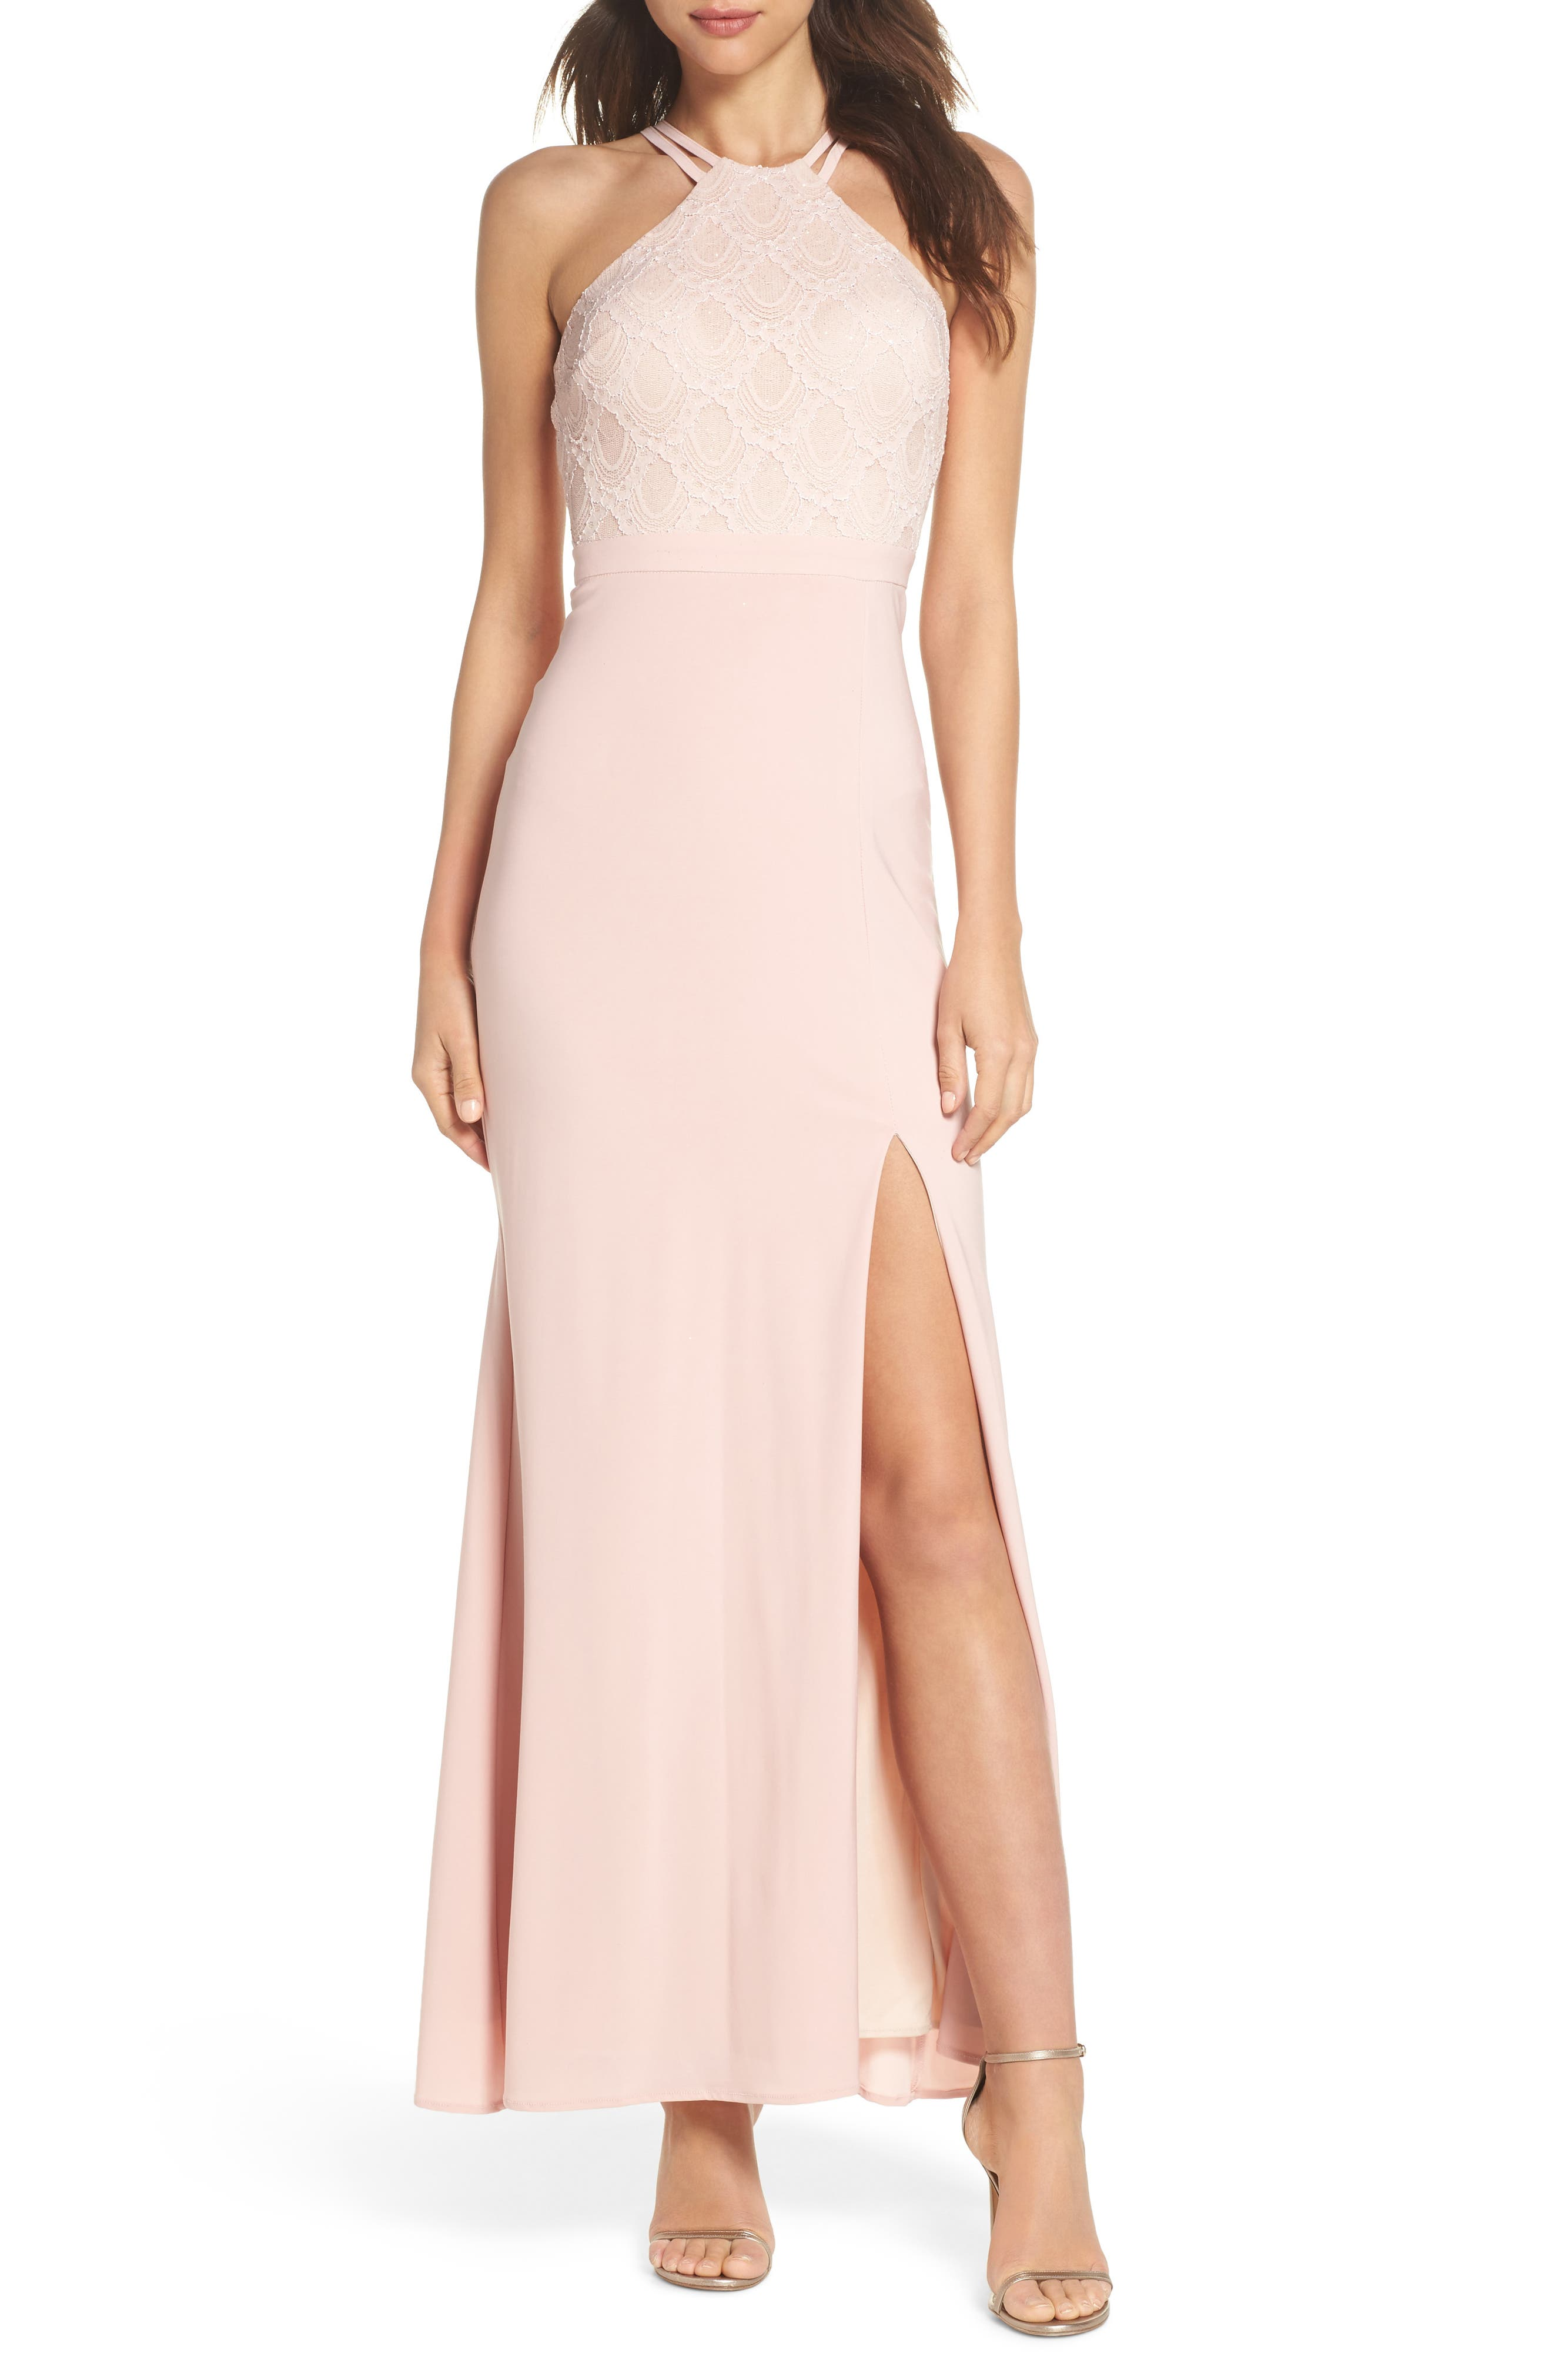 Lace Cutaway Bodice Gown,                             Main thumbnail 1, color,                             BLUSH / NUDE